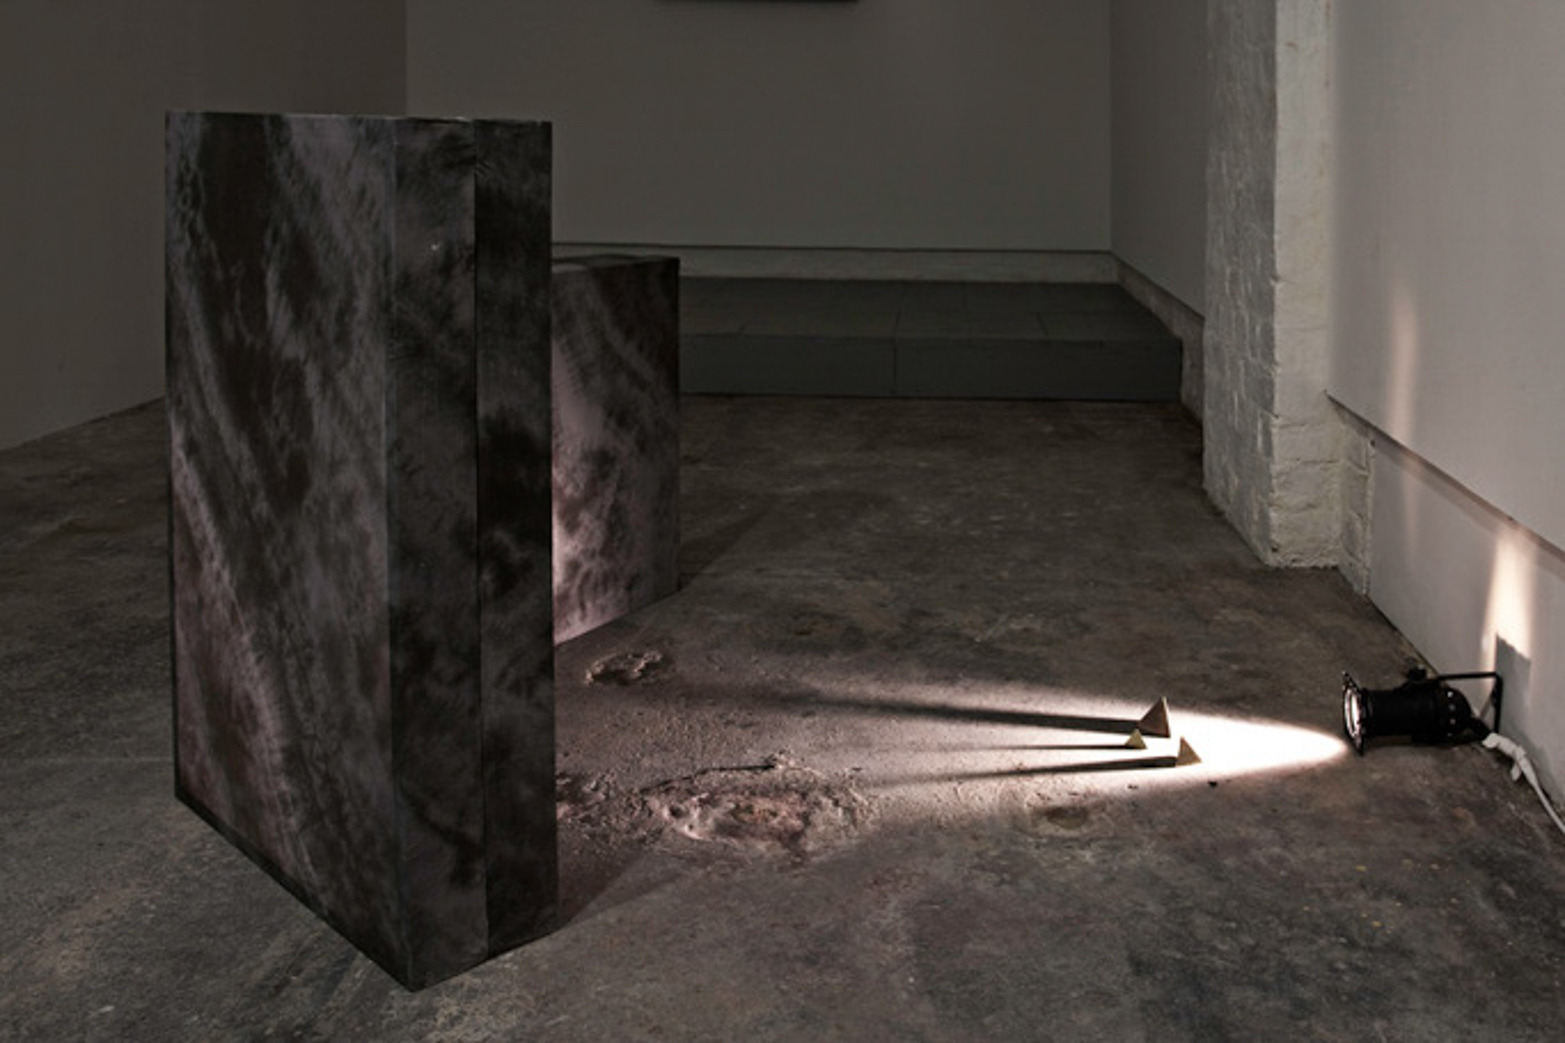 Erika Hock, Installation view.